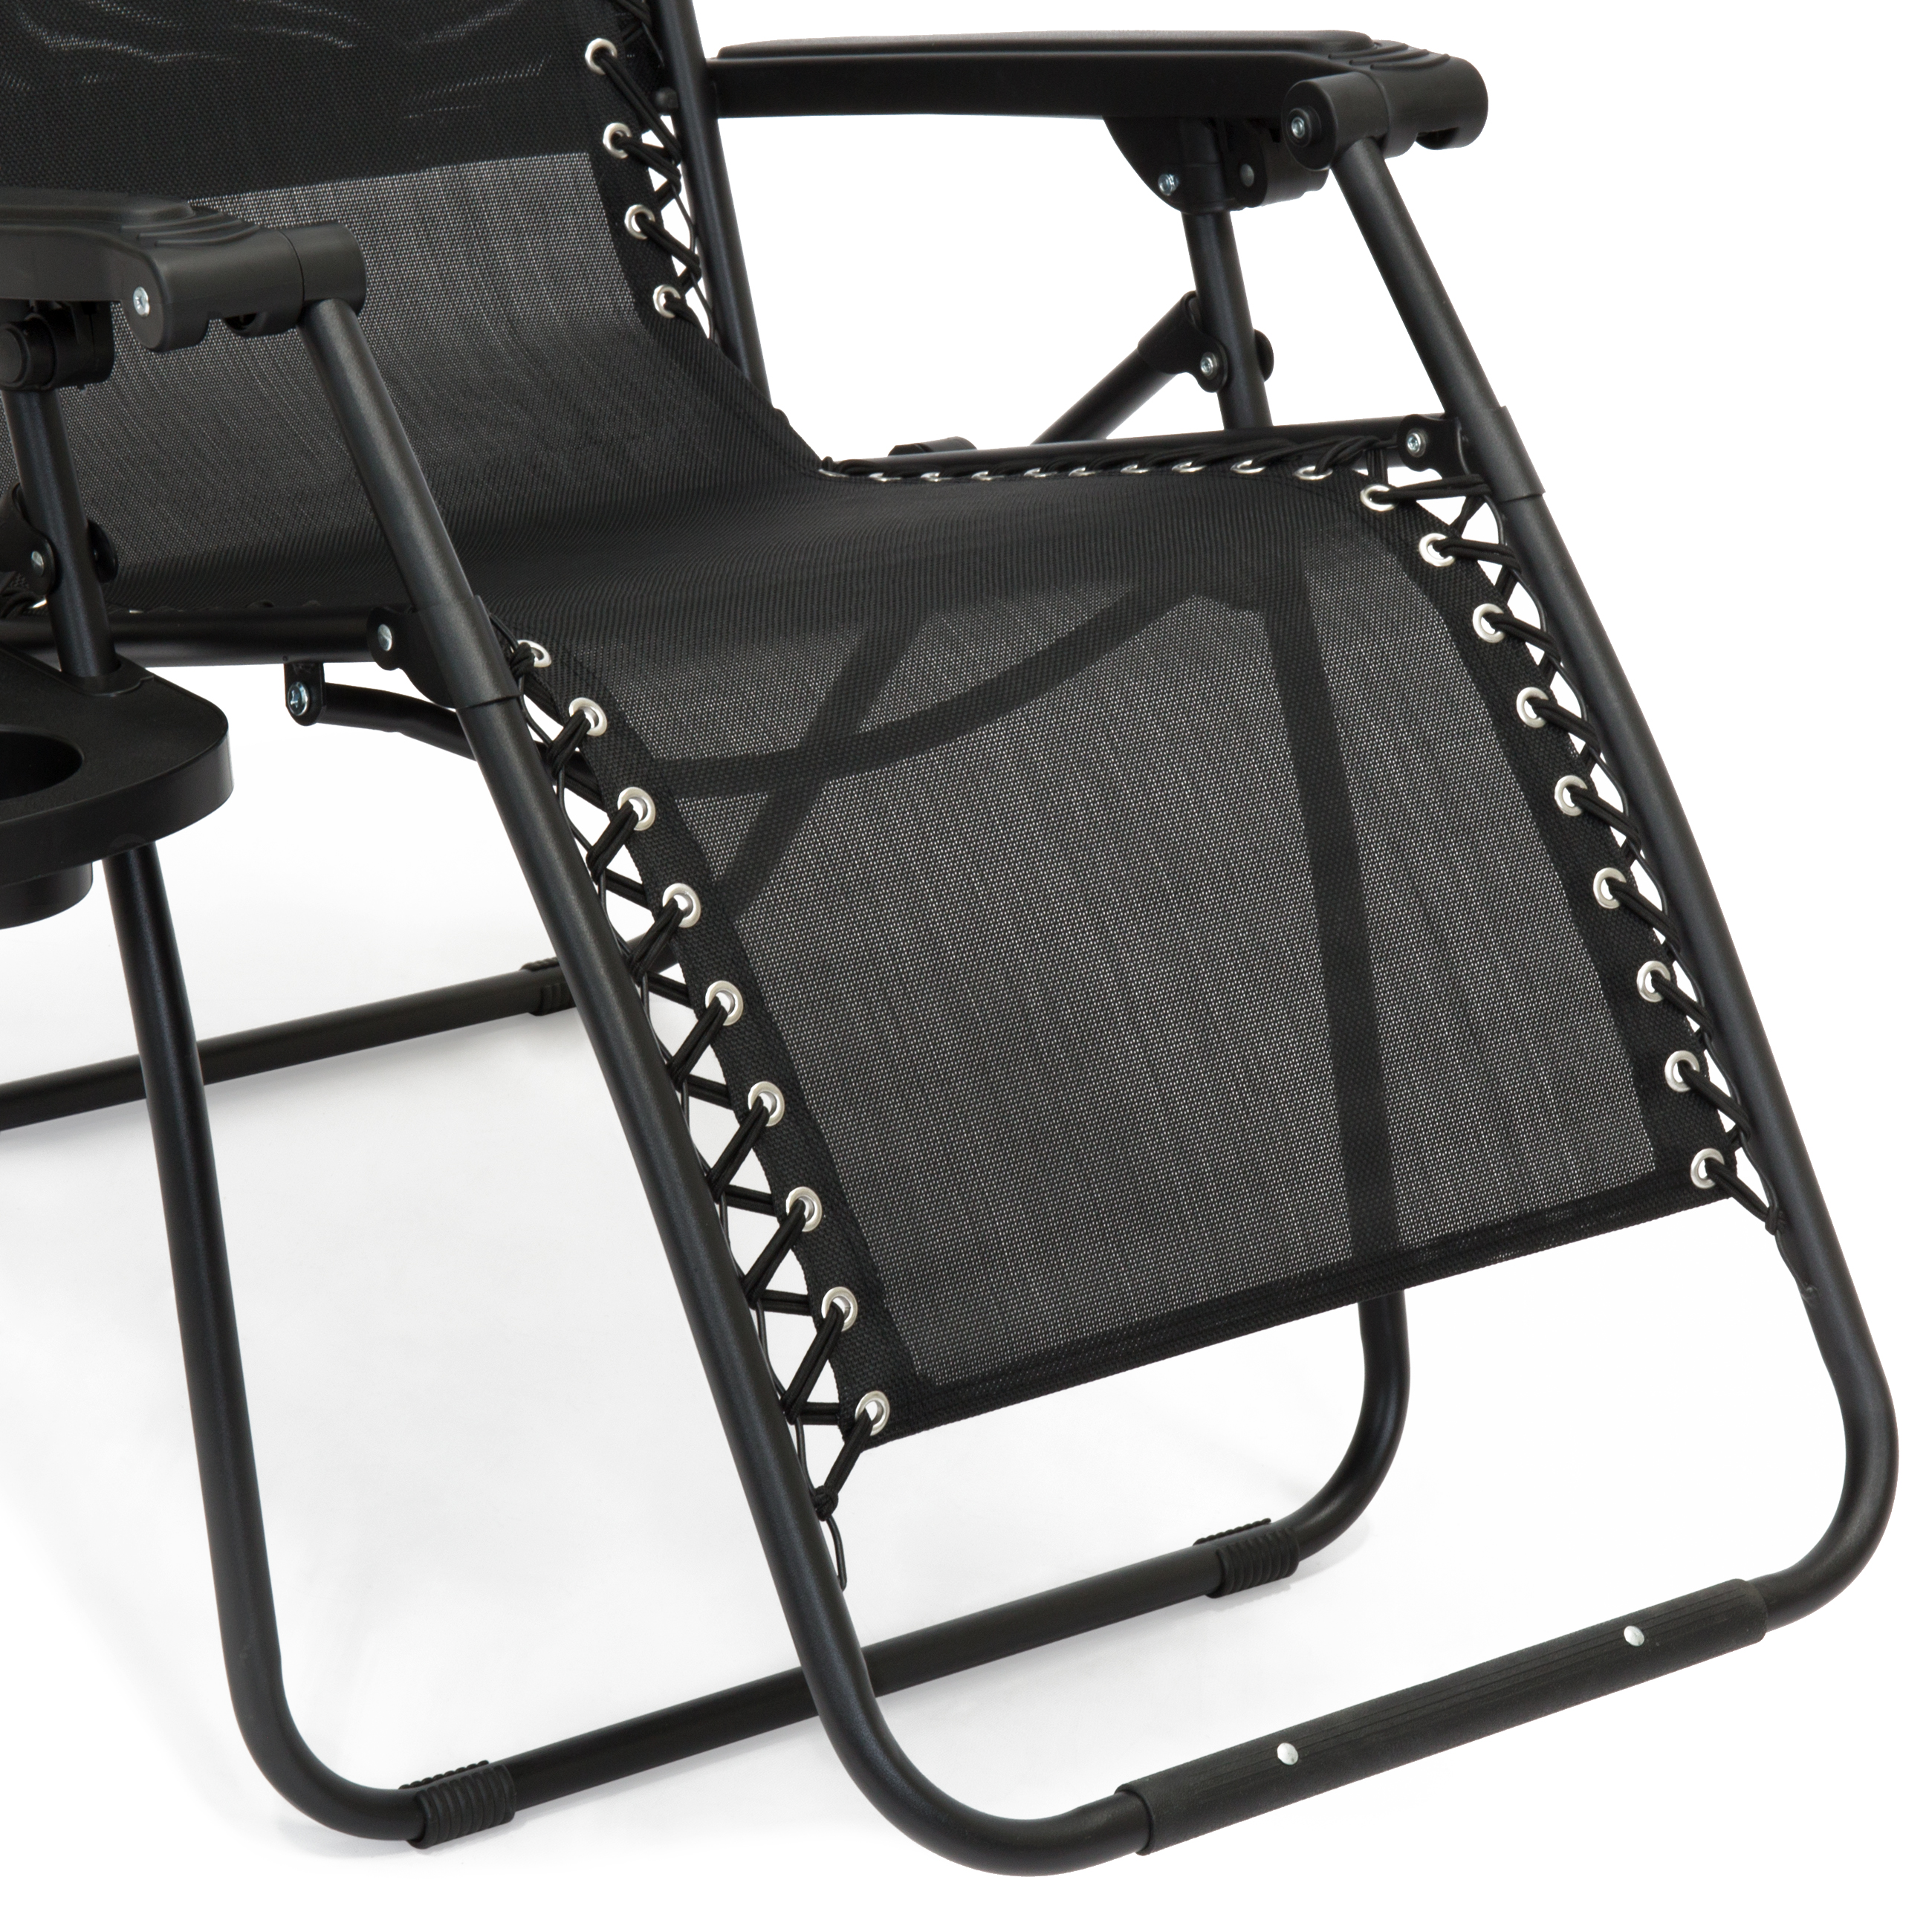 Folding Zero Gravity Recliner Lounge Chair W Shade Amp Cup